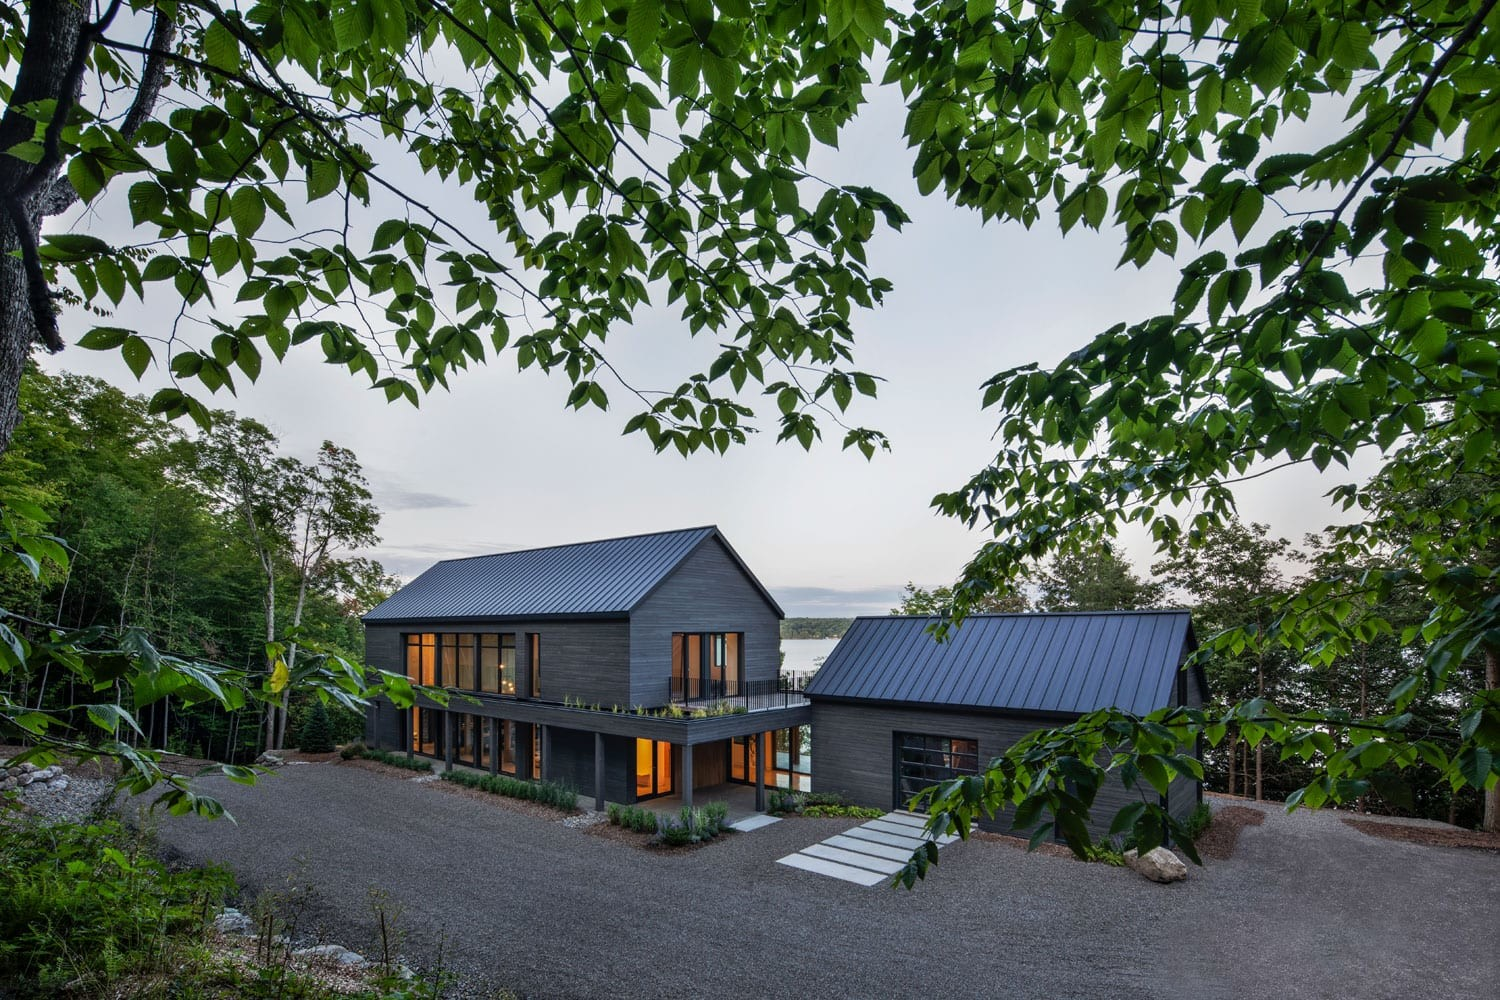 Cap St-Martin house by Bourgeois / Lechasseur architects